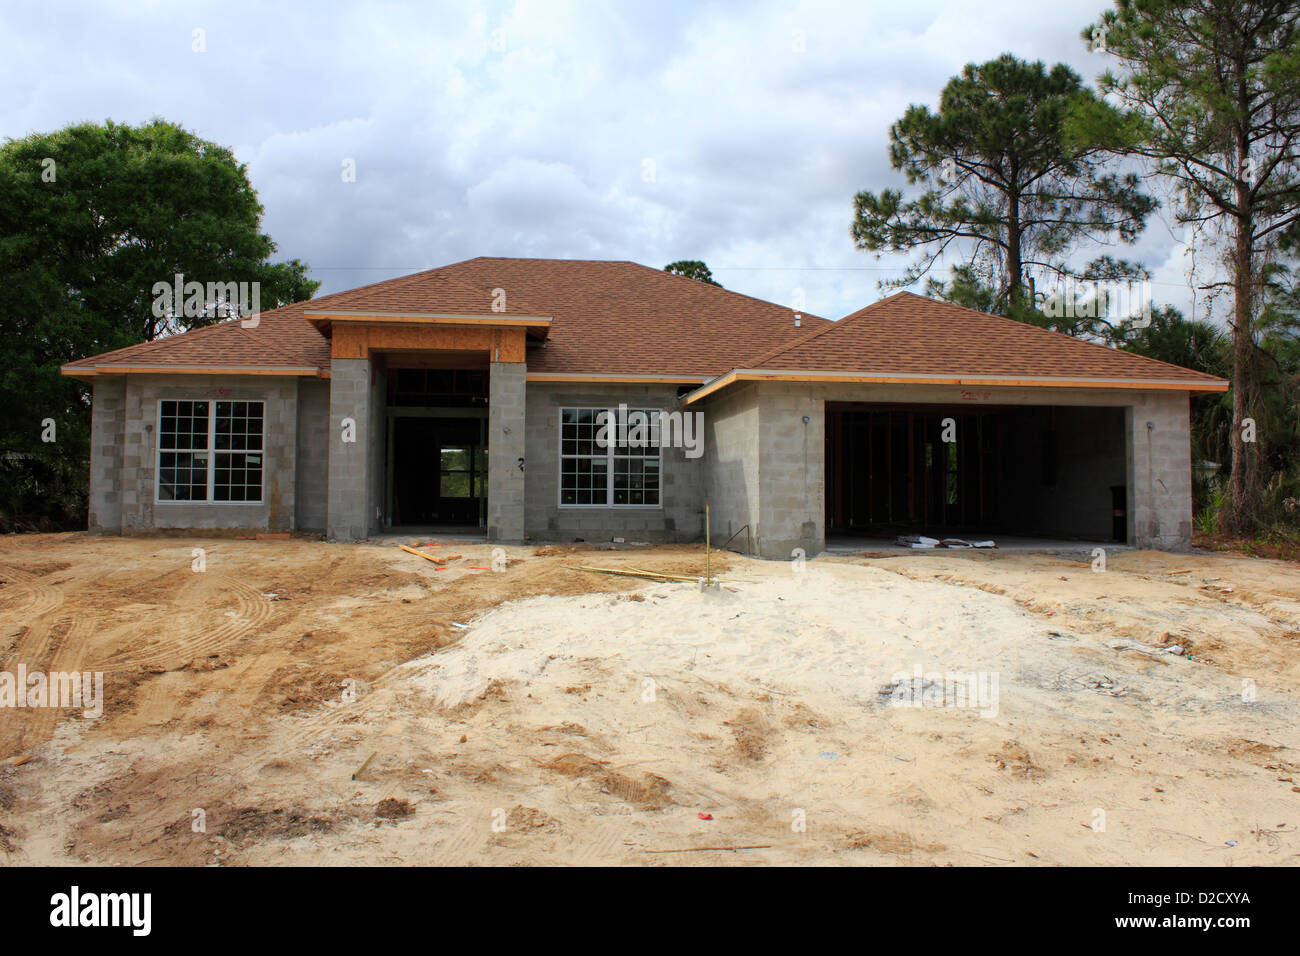 A typical 3 bedroom 2 bath cement block construction home house being built  in Florida  USA. A typical 3 bedroom 2 bath cement block construction home house